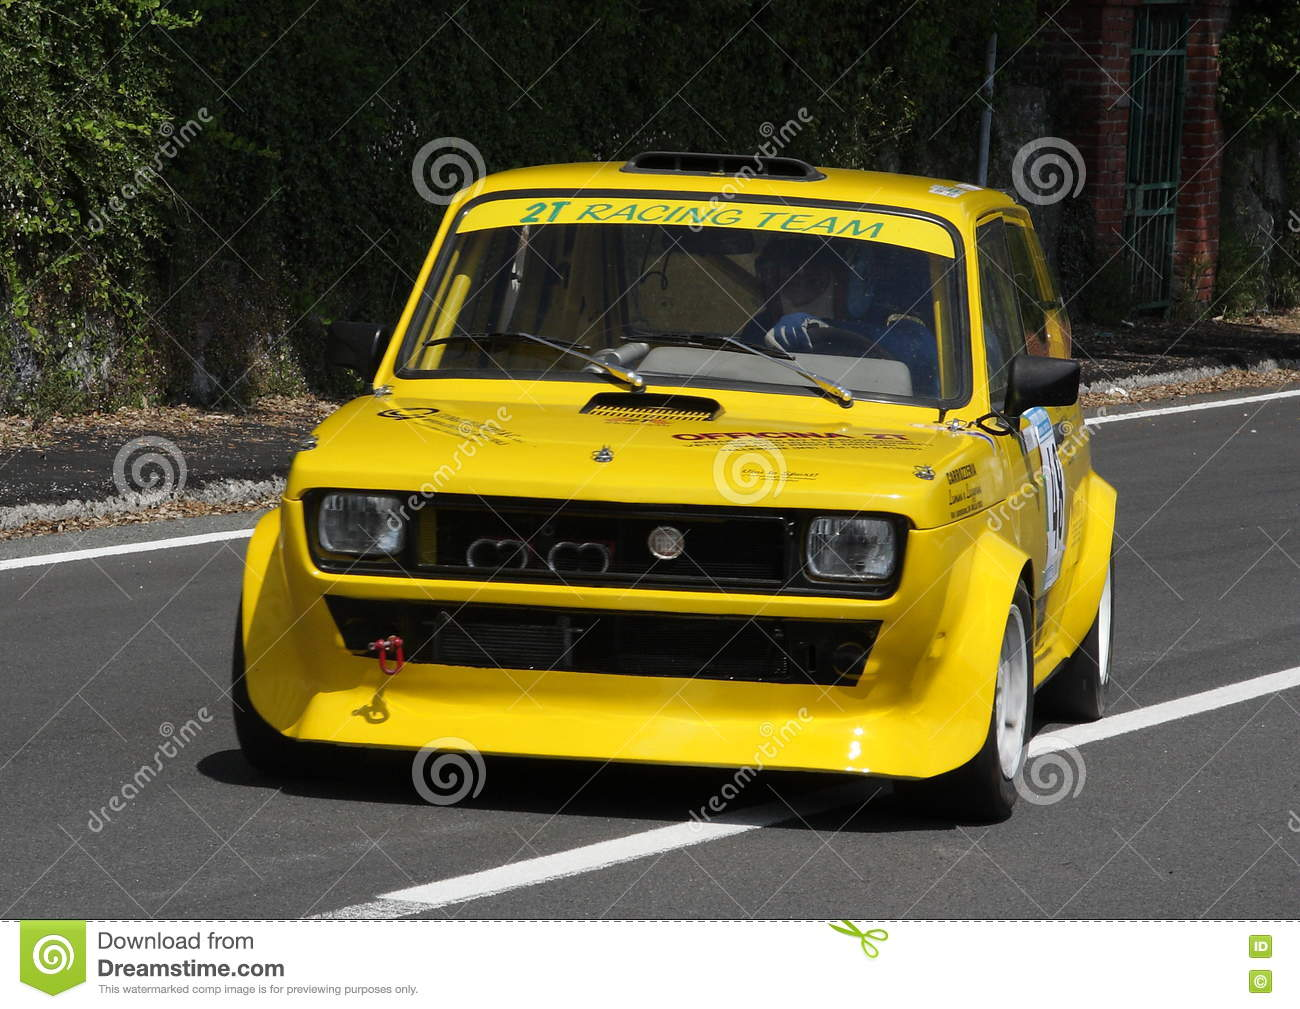 Fiat fiat 127 : Fiat 127 rally car editorial stock image. Image of edition - 73033224